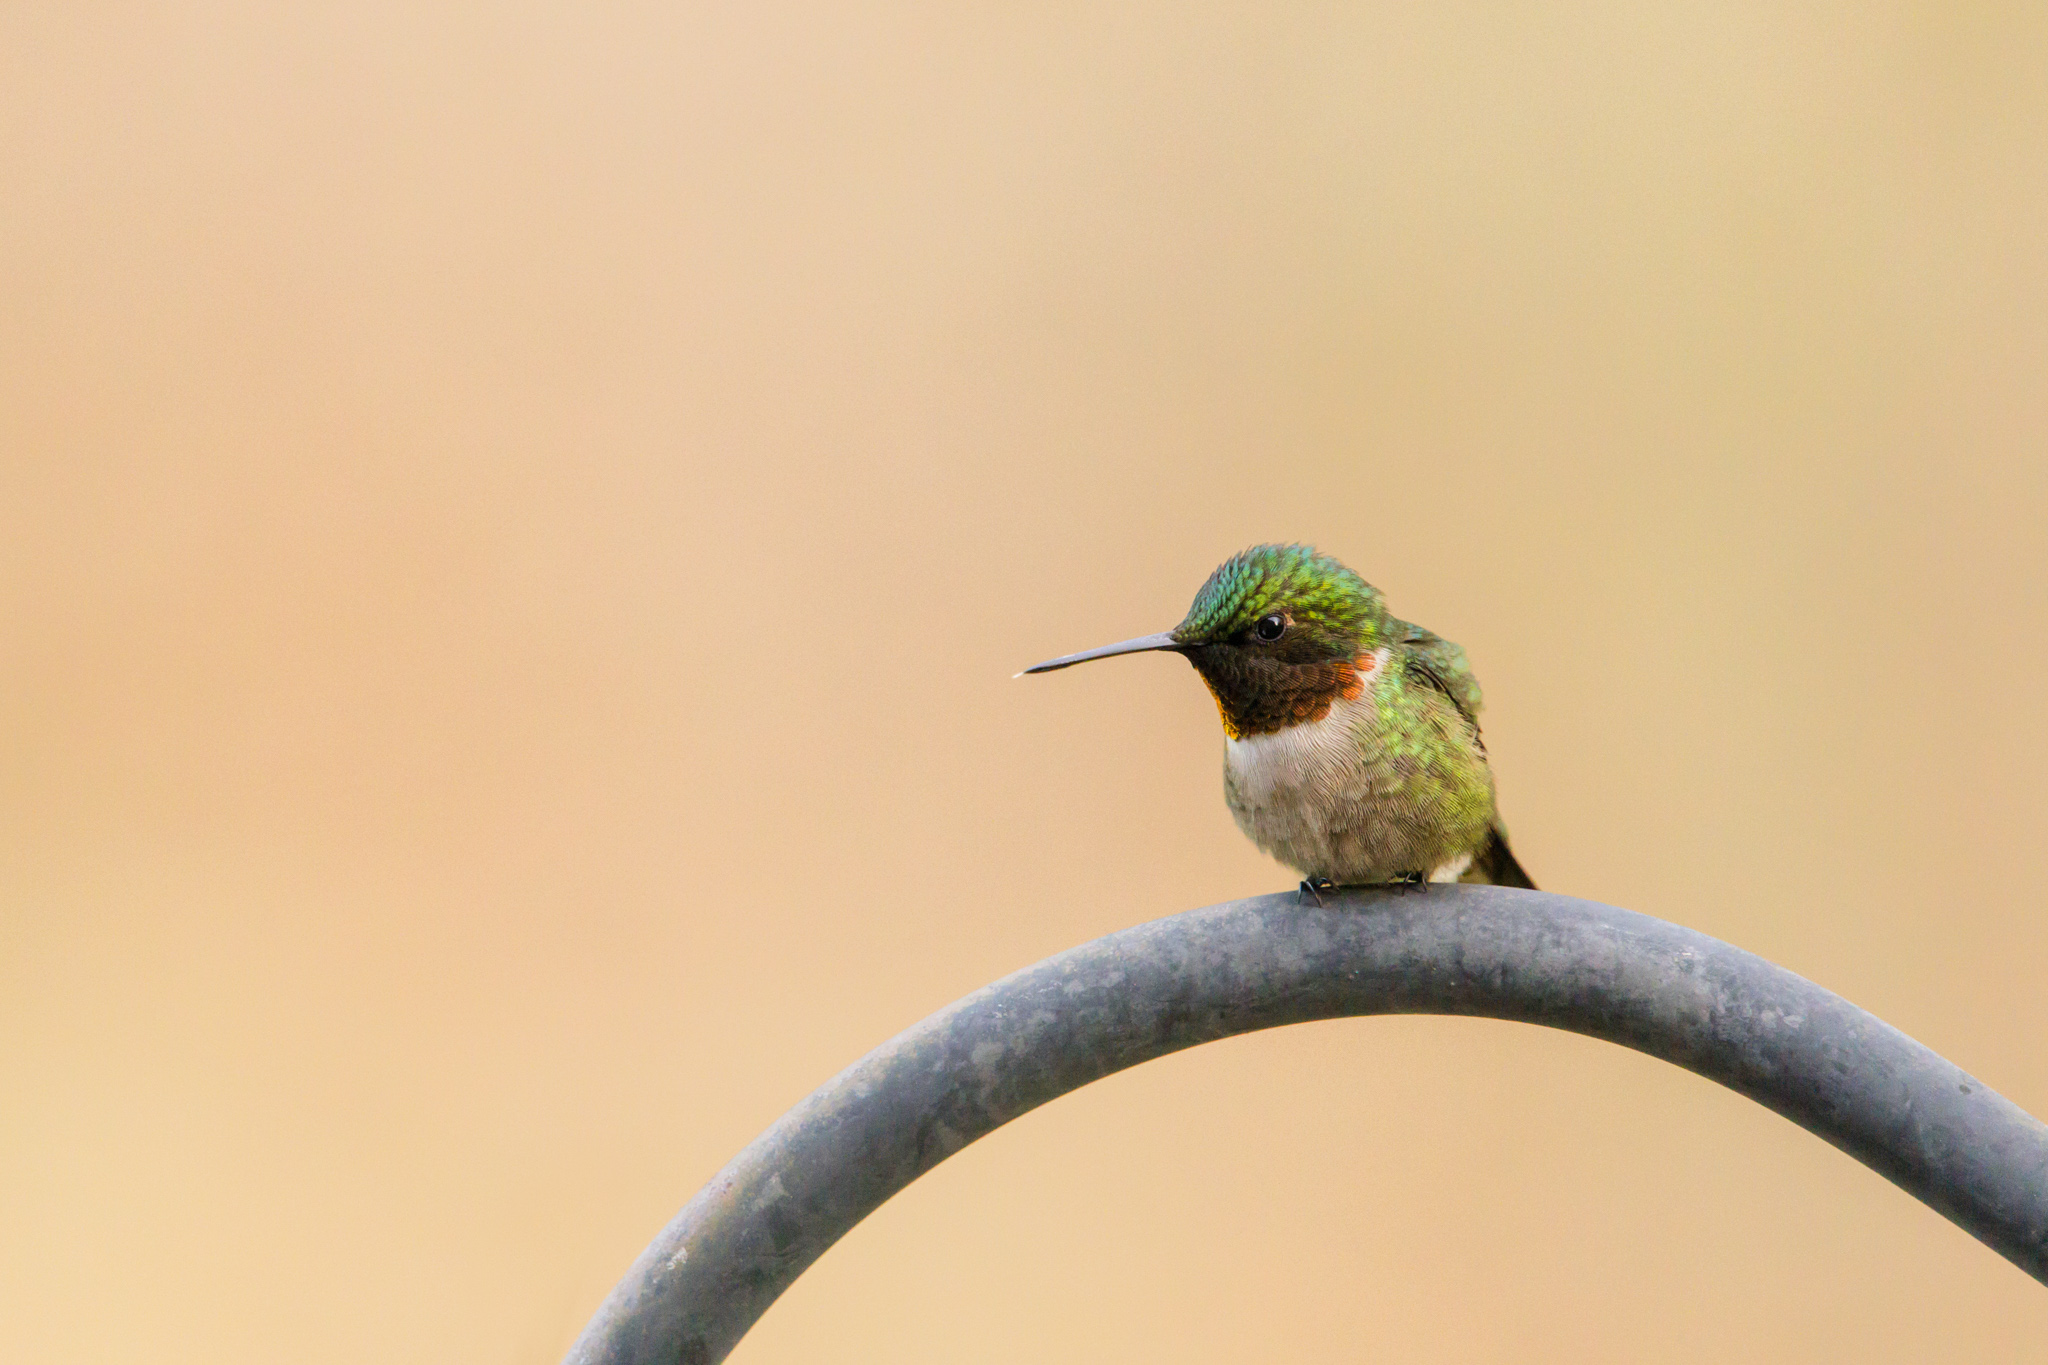 ruby throated hummingbird at rest